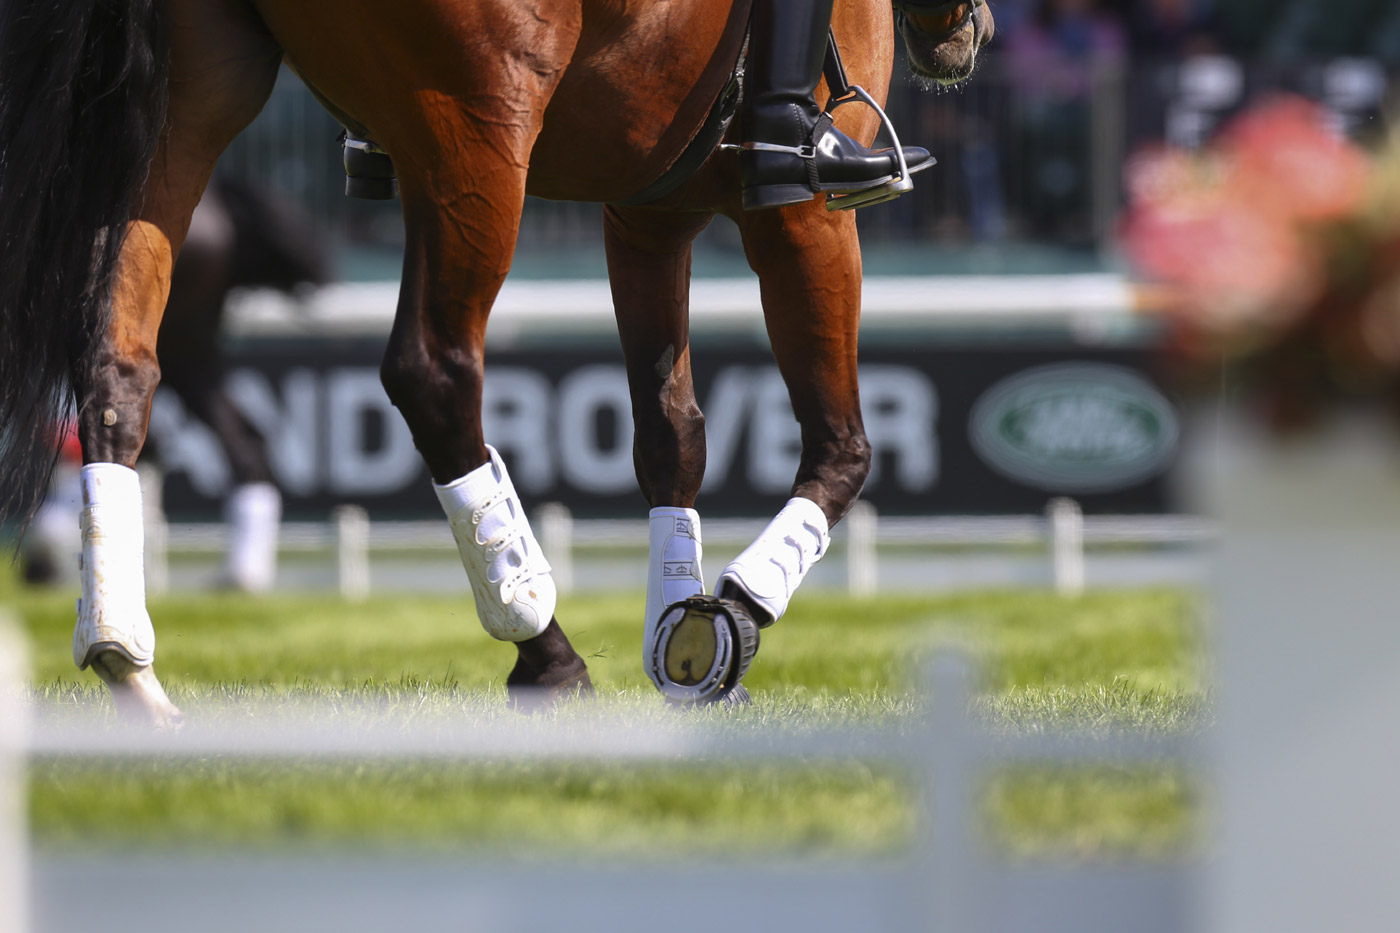 <p>Subtle branding at Land Rover Burghley Horse Trials.</p>